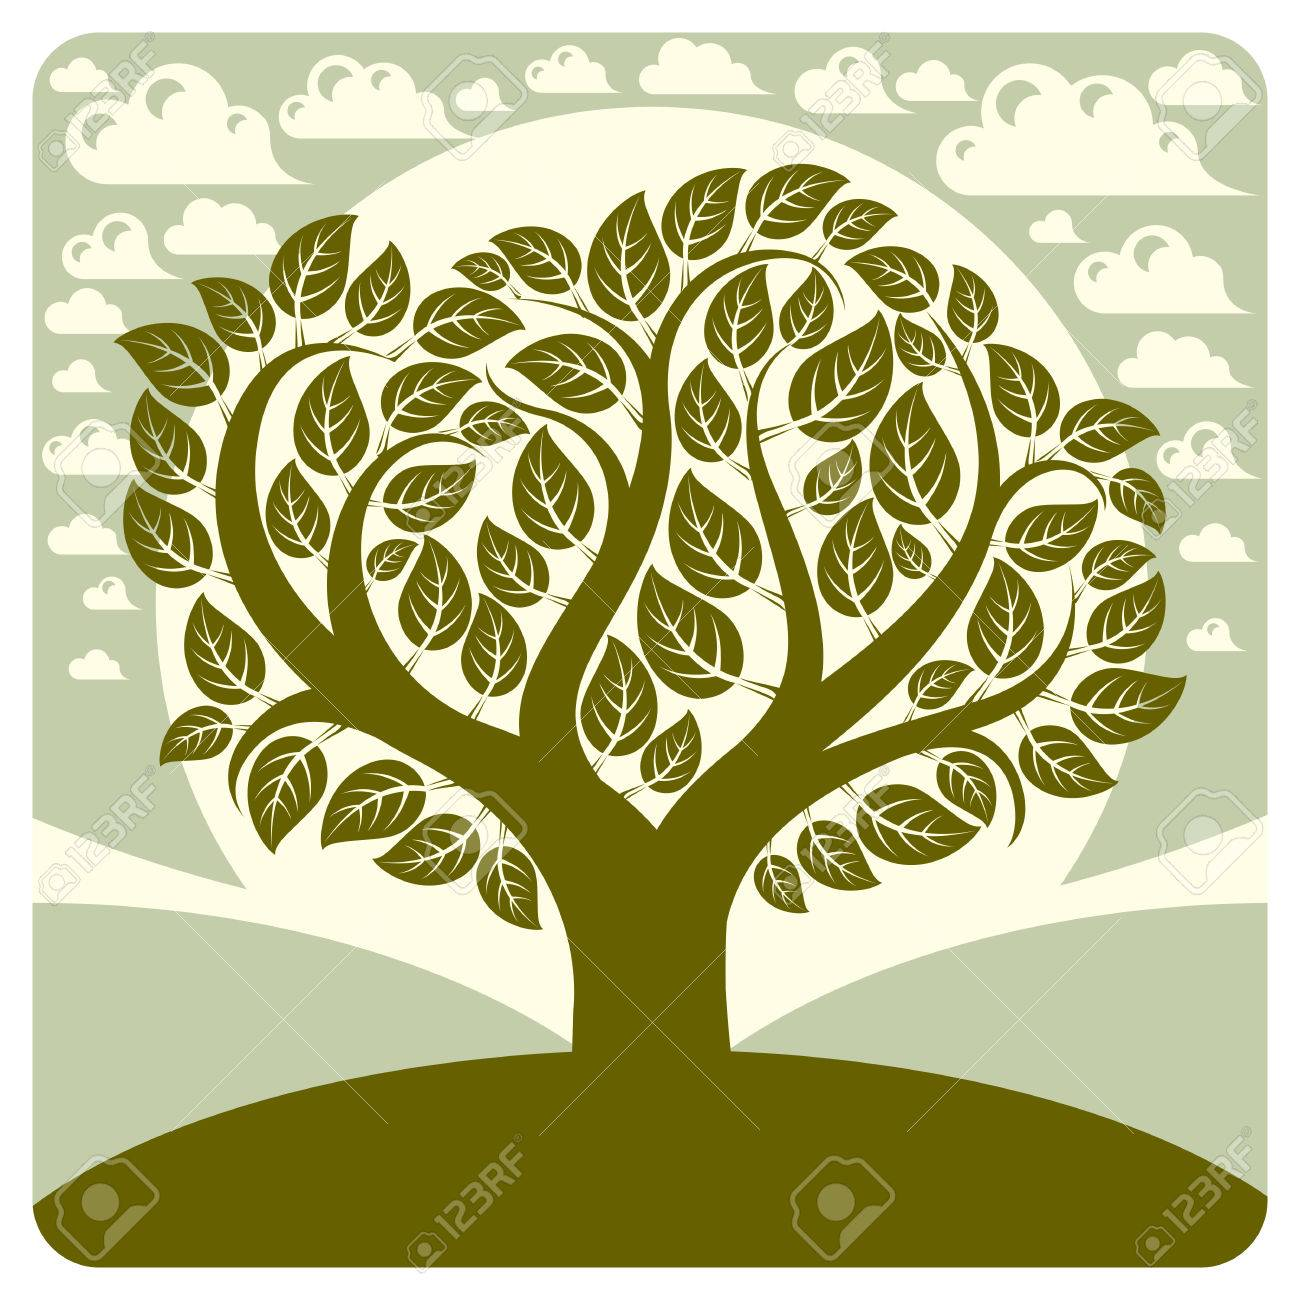 art vector graphic illustration of spring tree growing on